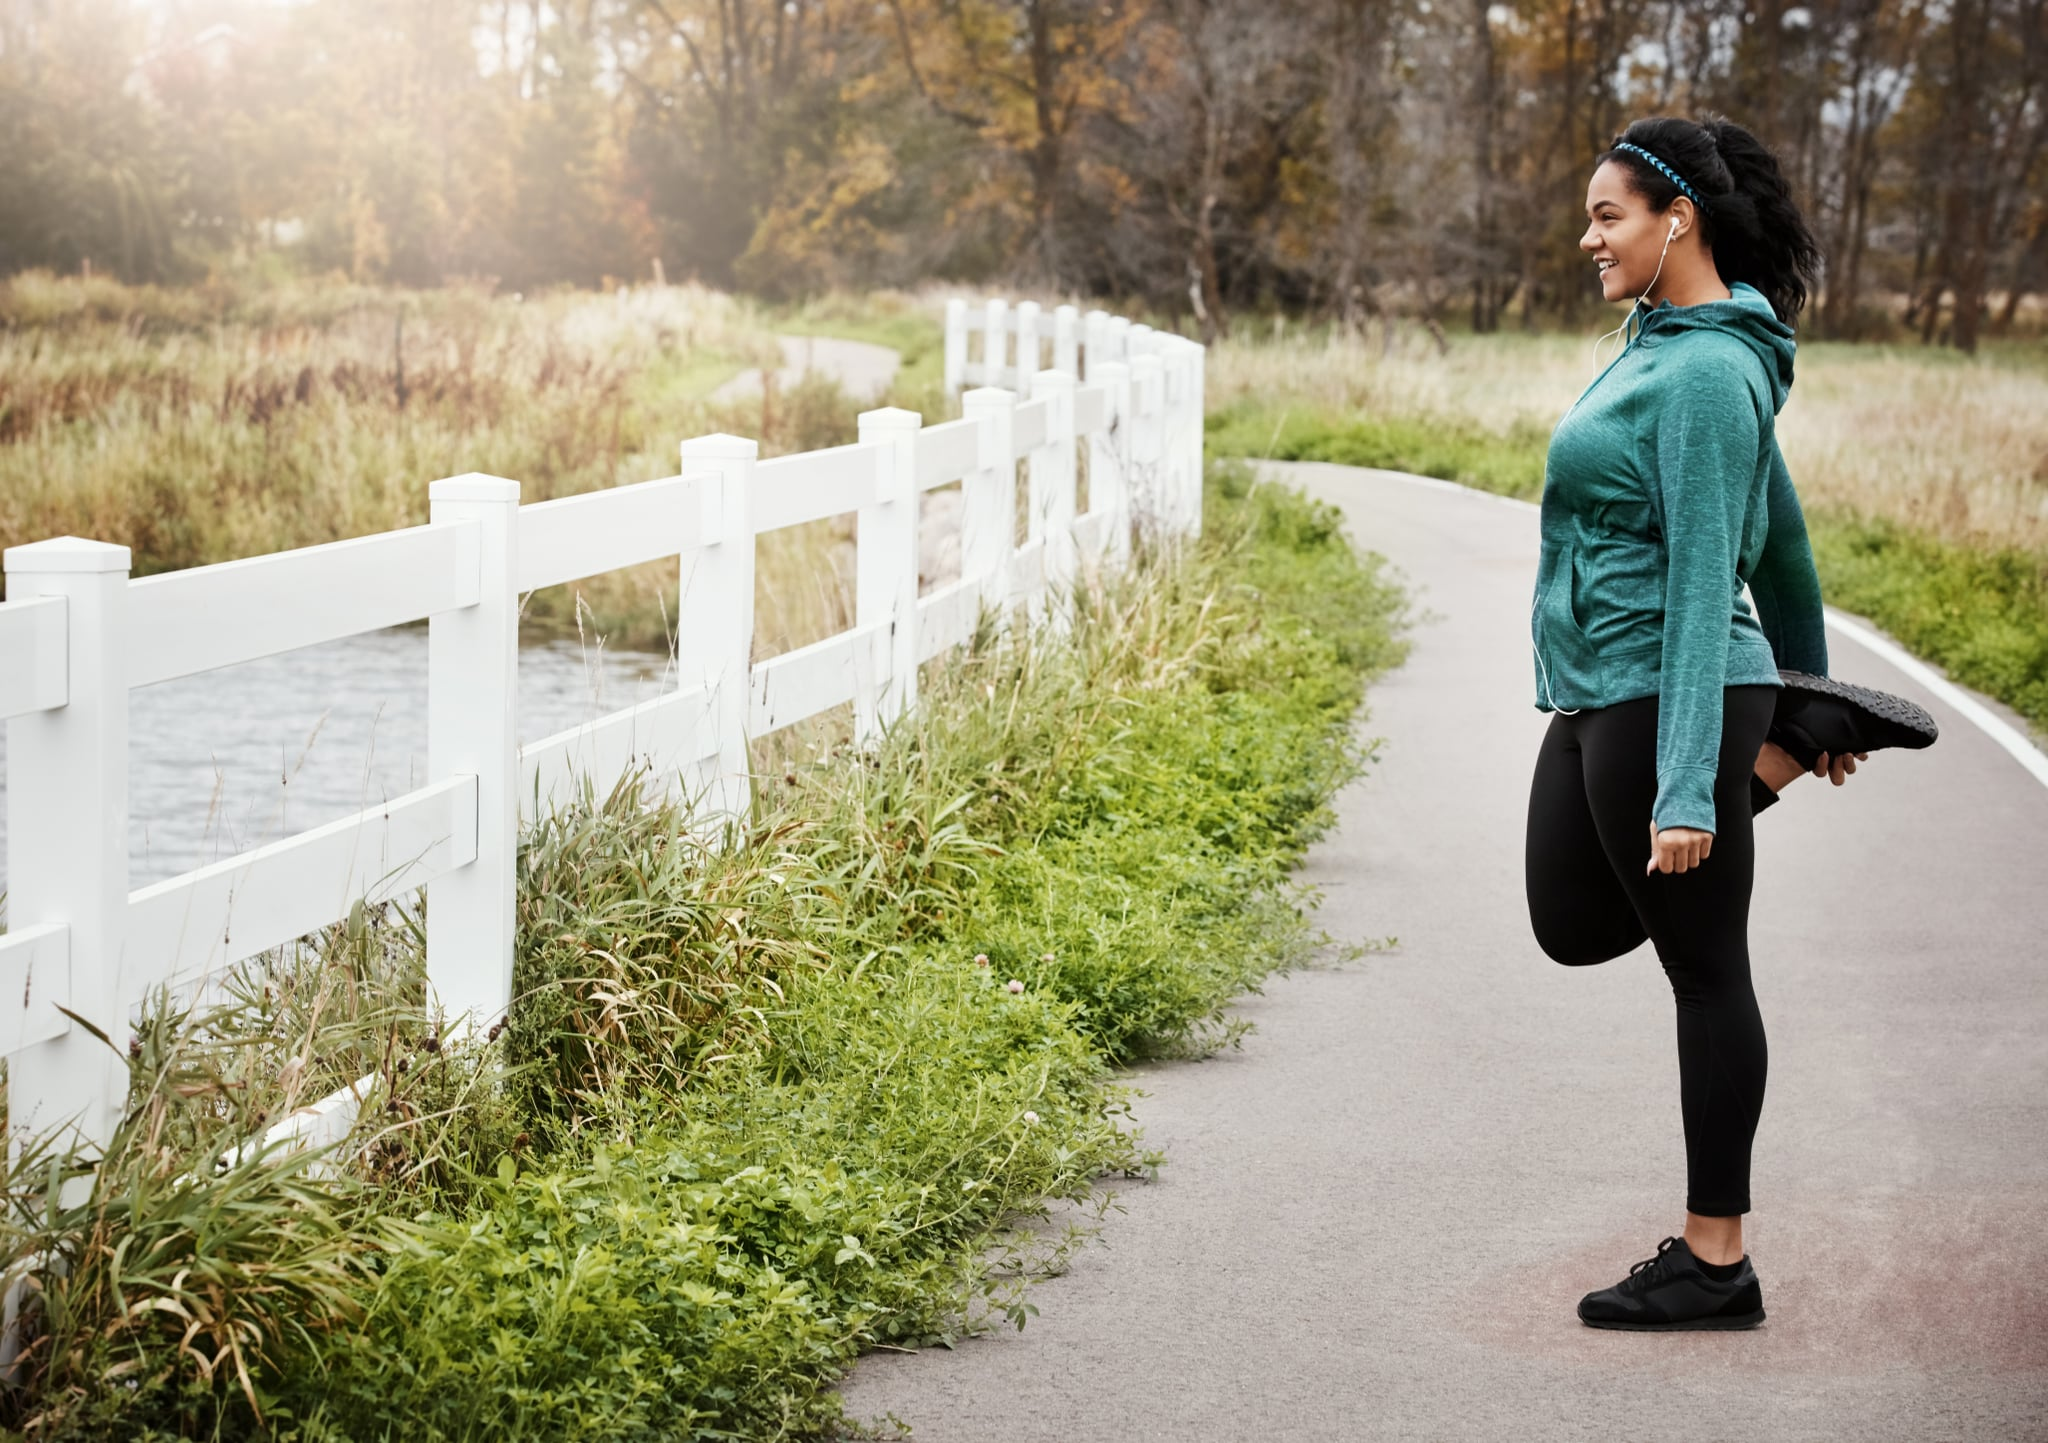 Shot of an attractive young woman stretching while out for a run in nature